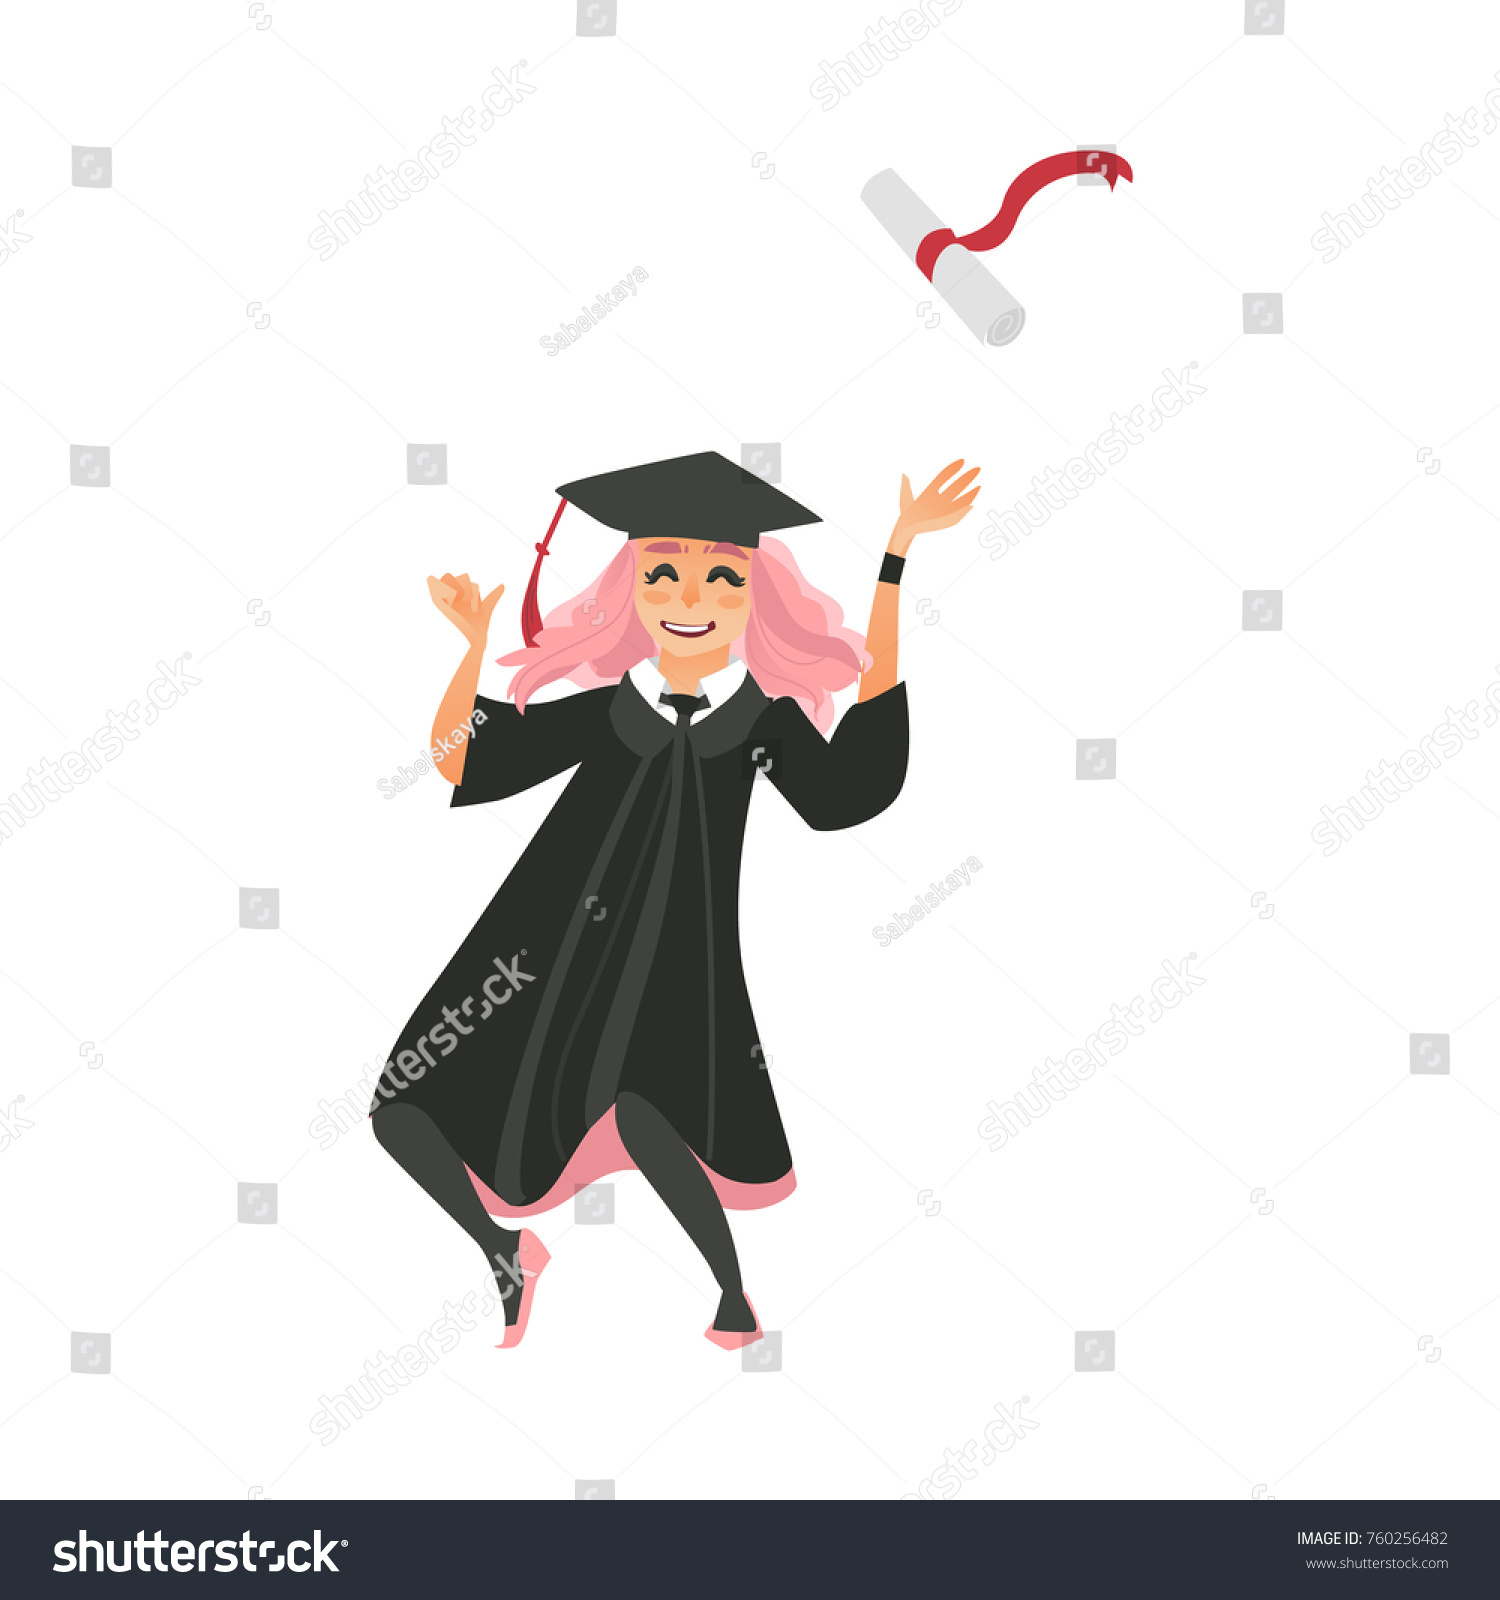 Girl Graduation Cap Gown Throwing Diploma Stock Vector 760256482 ...